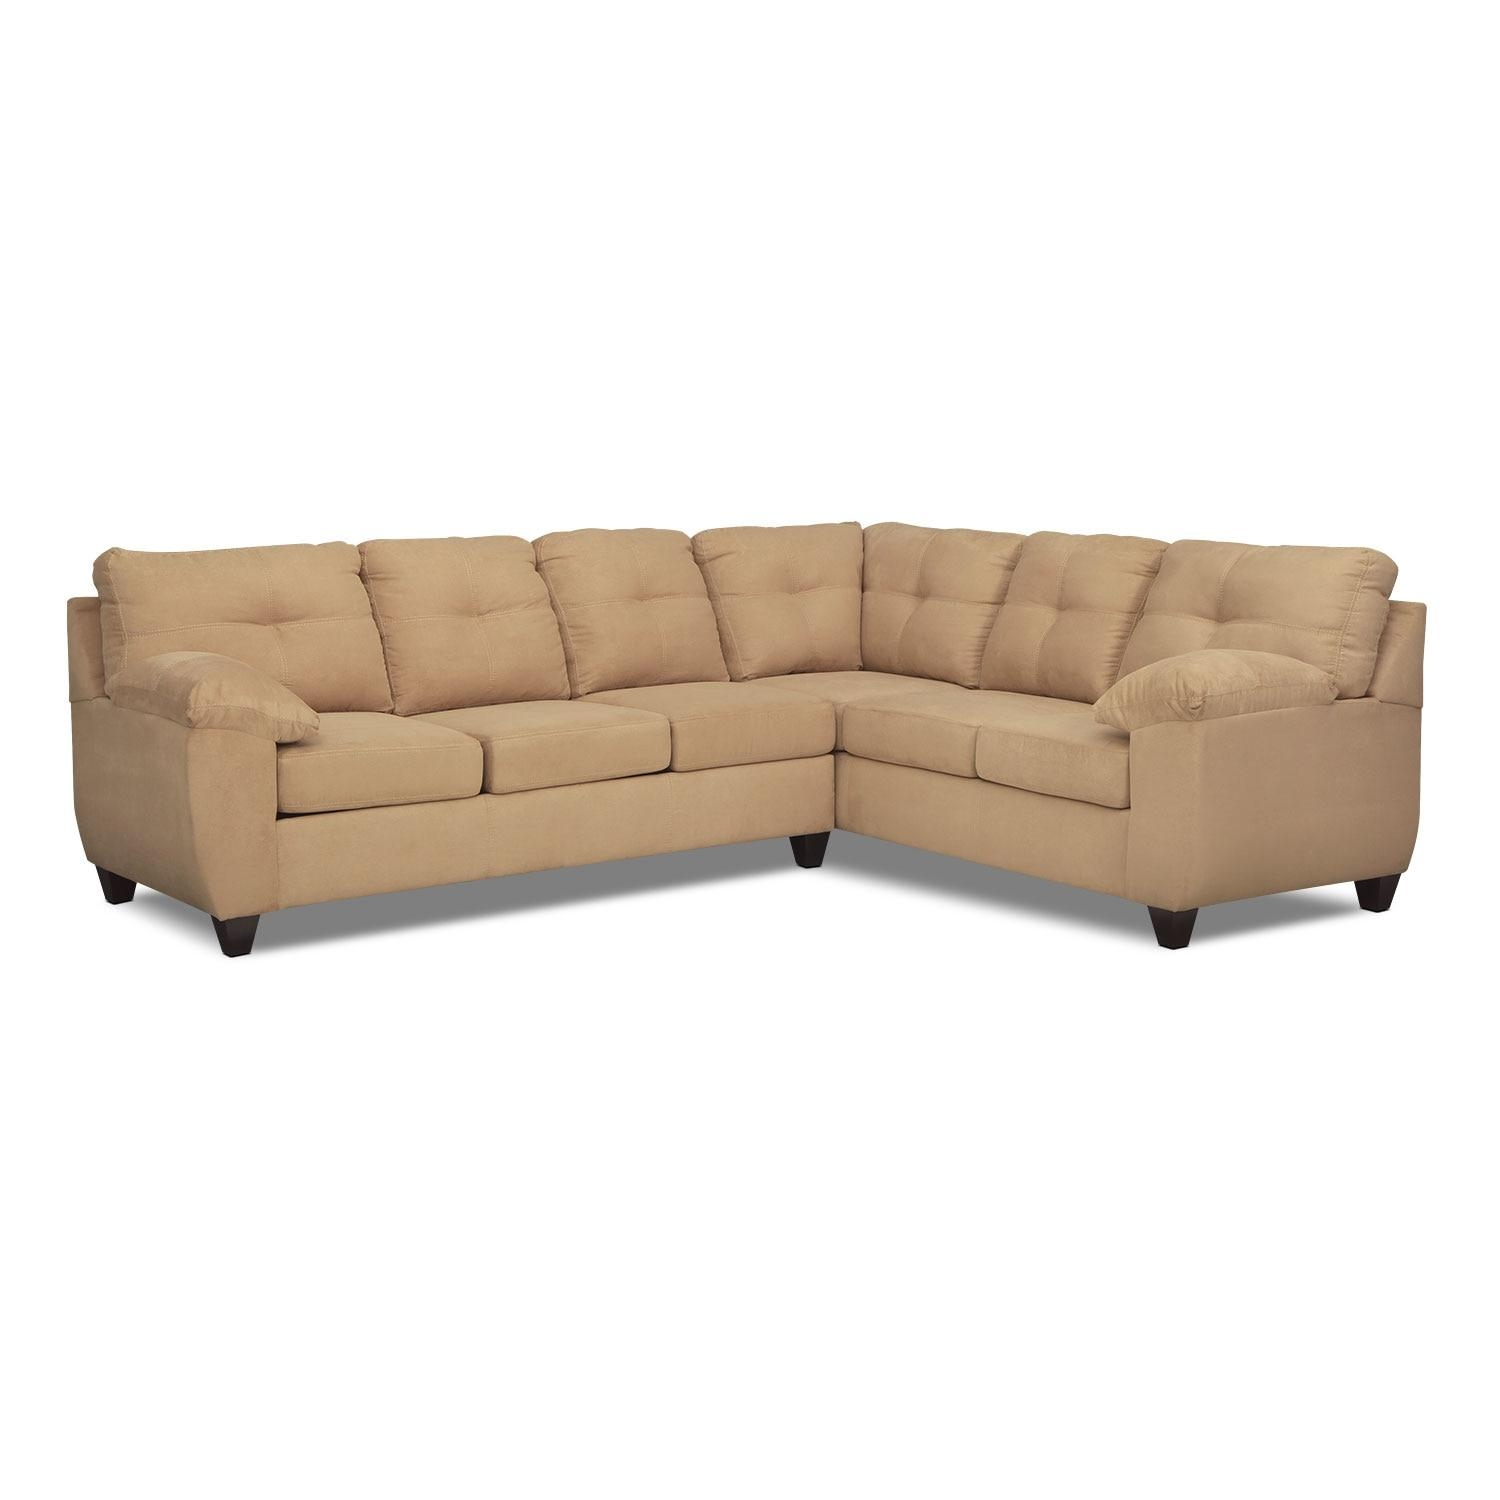 Sleeper Sofas | Value City Furniture | Value City Furniture Throughout Sleeper Sectional Sofas (Image 15 of 20)